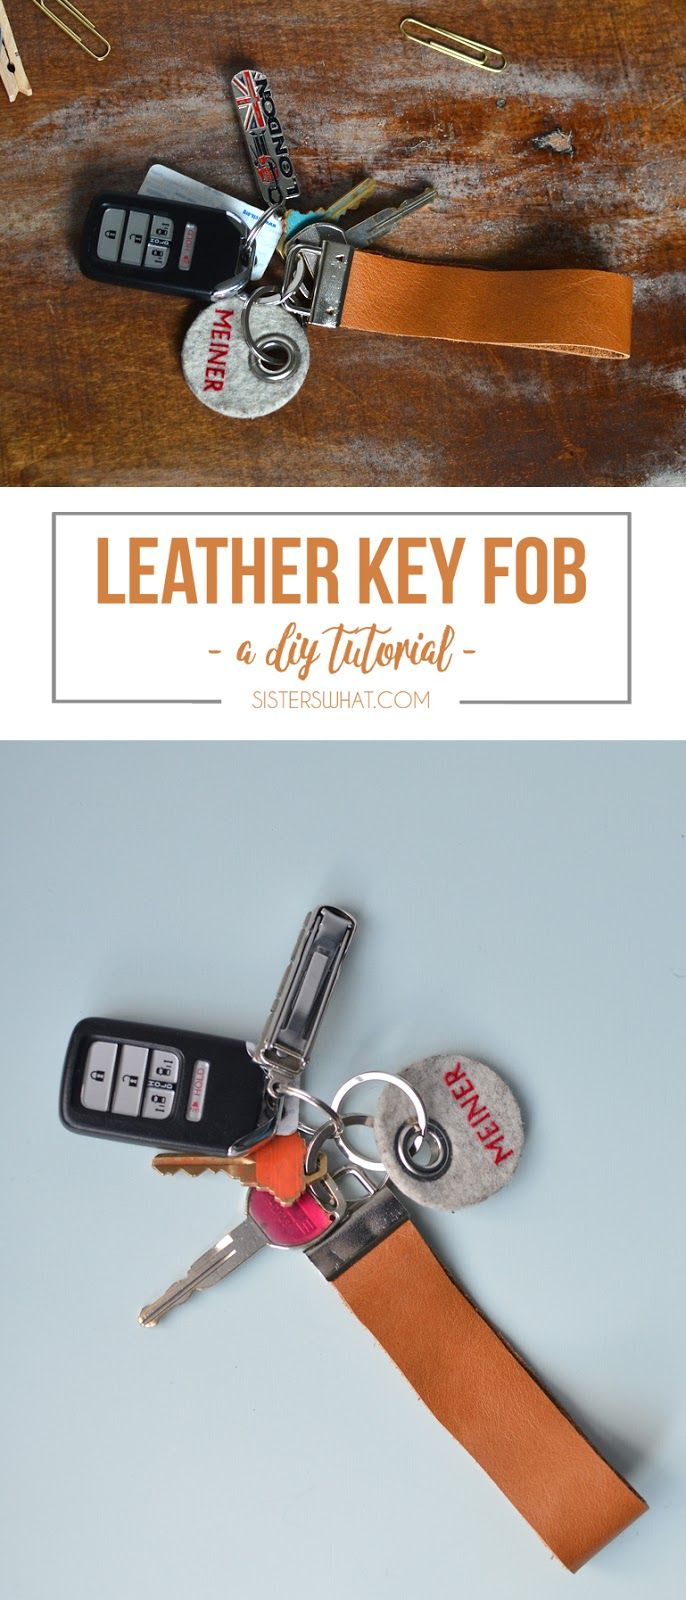 This leather key fob is so quick and easy to make, perfect for gifts!